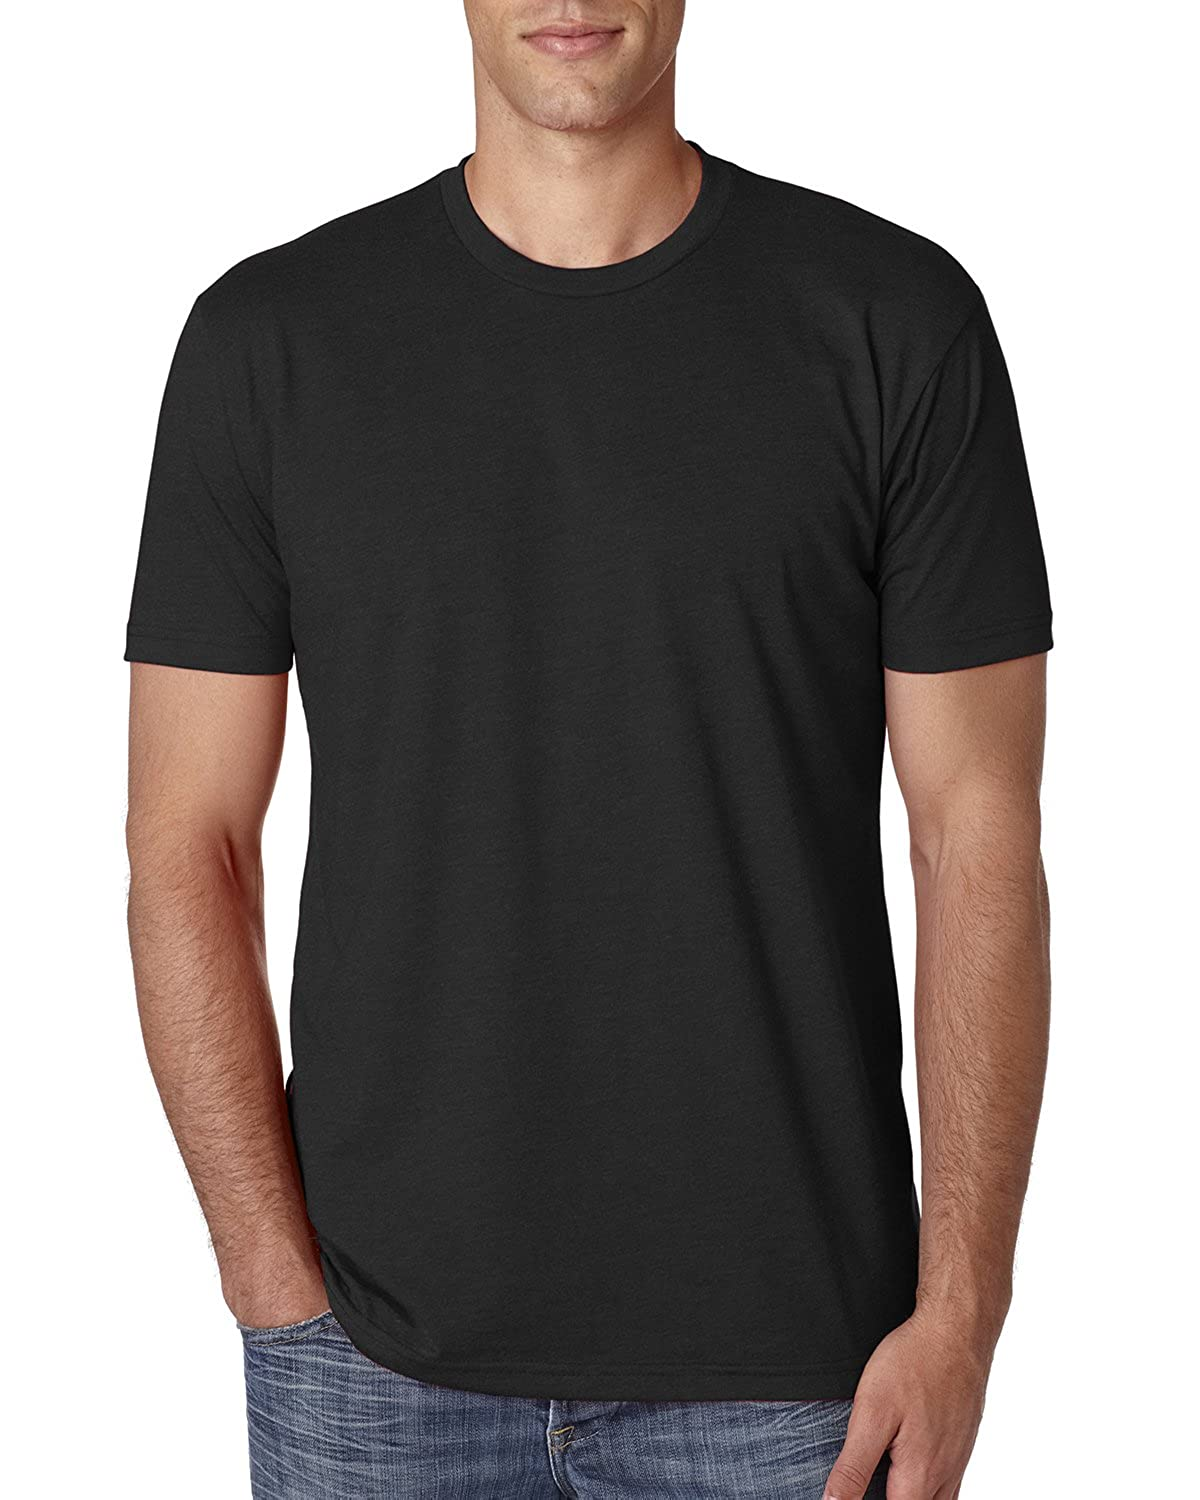 504ddd489 Next Level Mens T-Shirt | Amazon.com